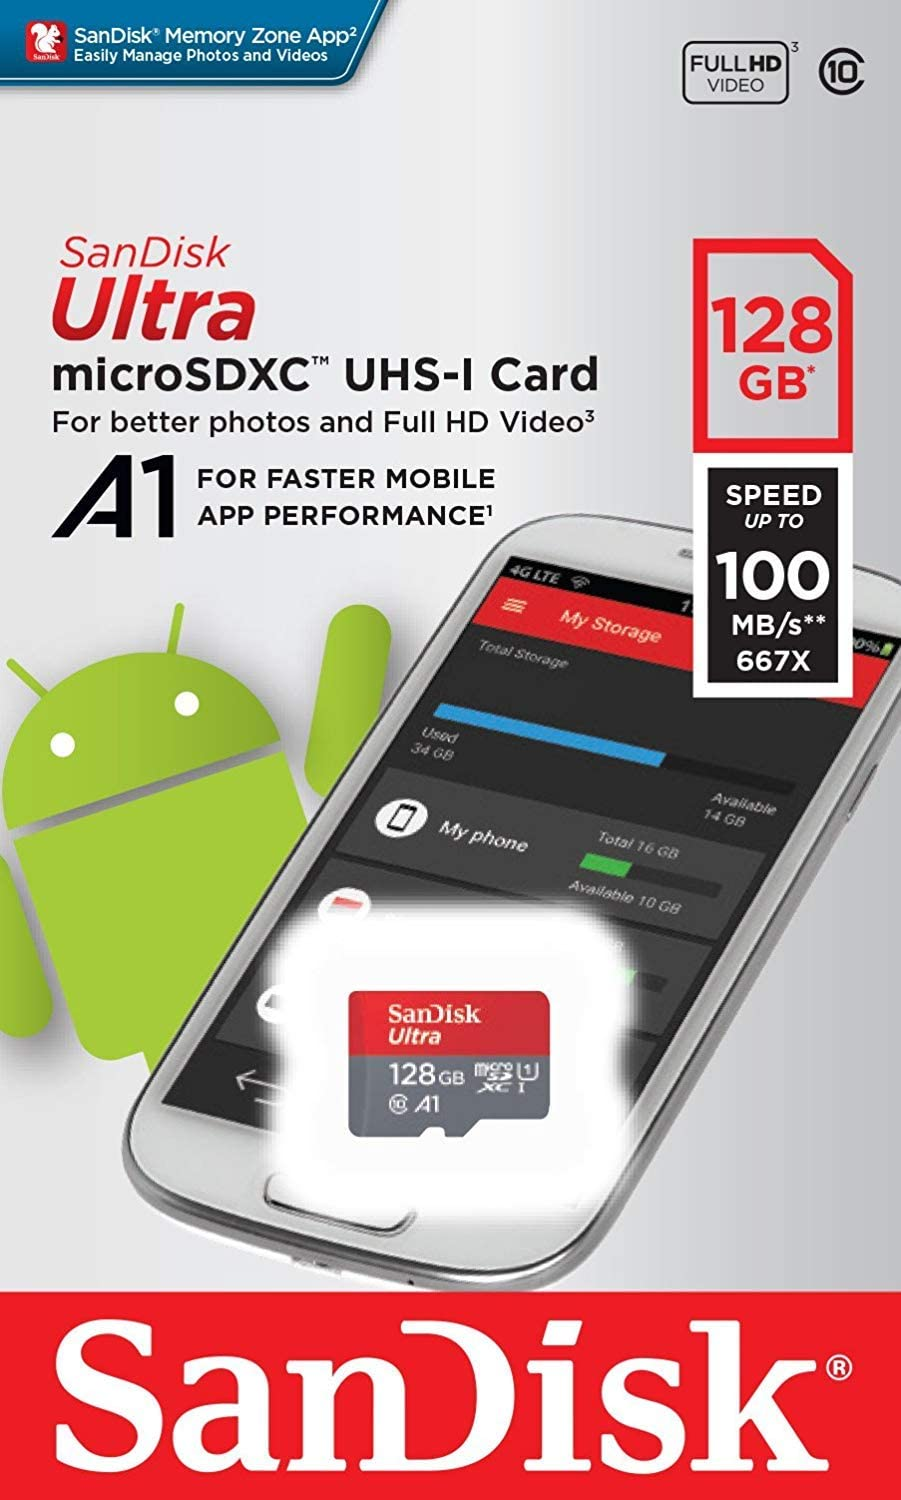 100MBs A1 U1 Works with SanDisk SanDisk Ultra 128GB MicroSDXC Verified for Samsung Galaxy J7 V 2nd Gen by SanFlash